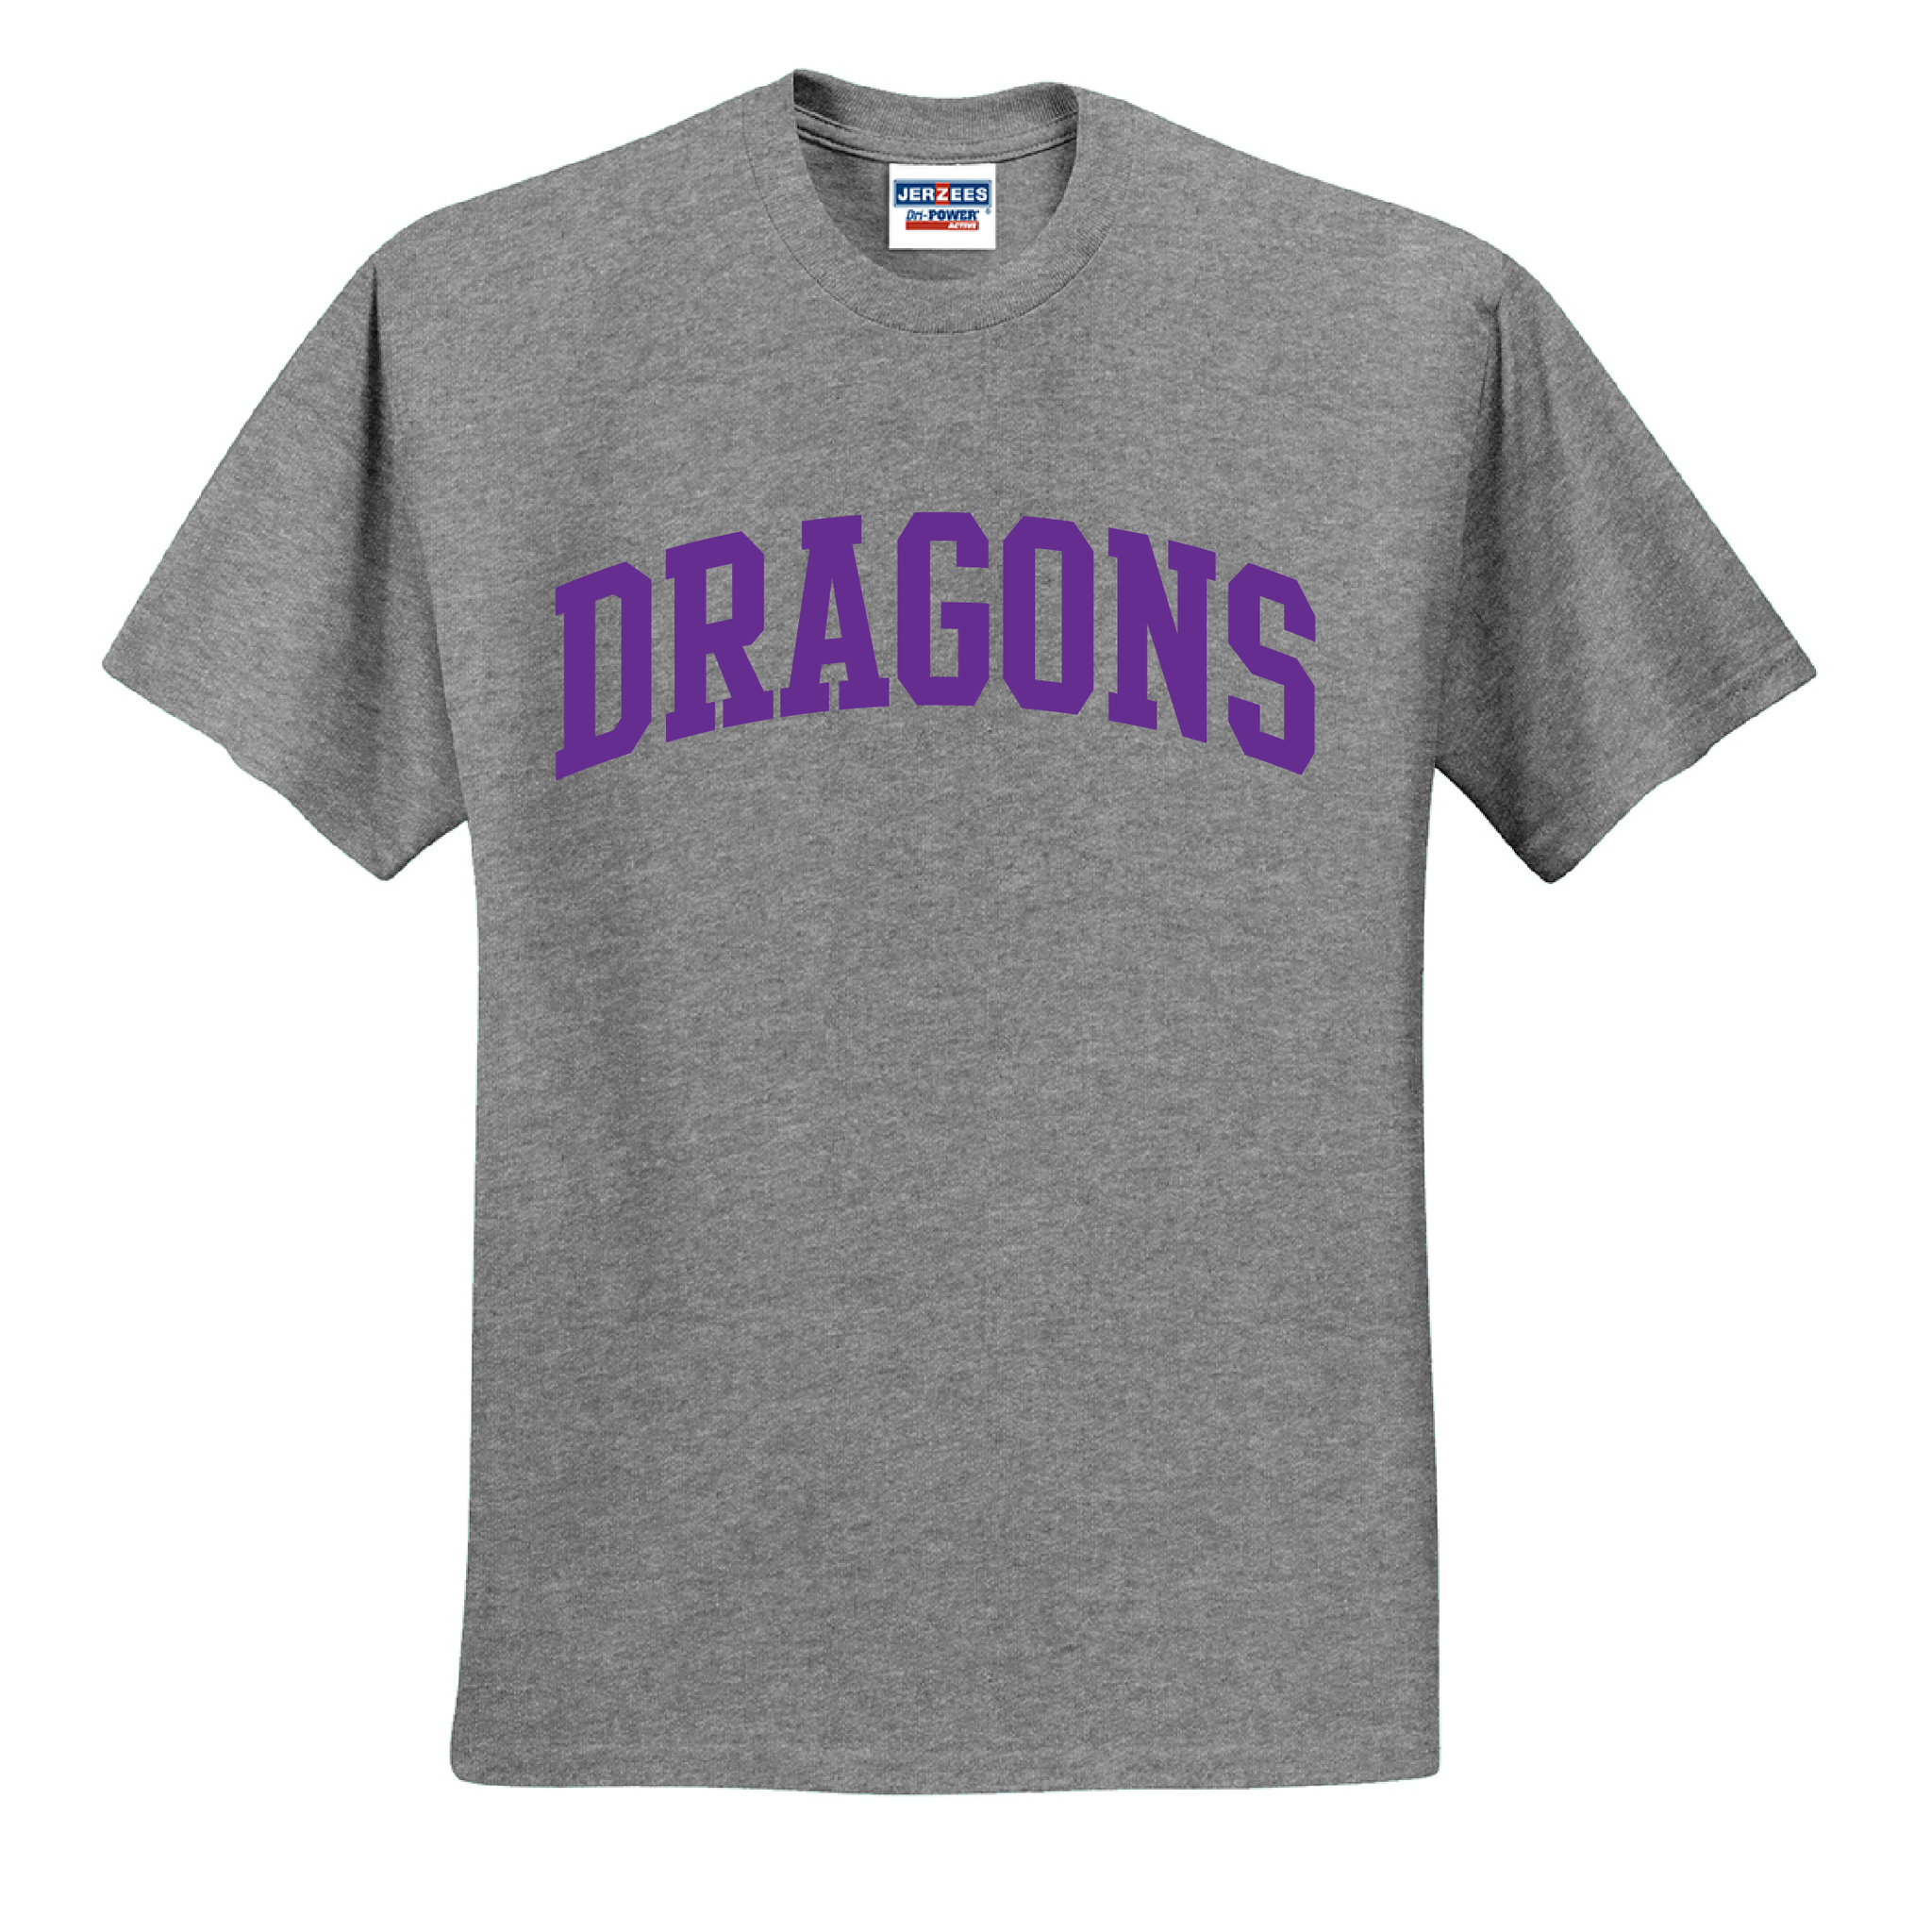 Fairmont West Dragons Team T-Shirt